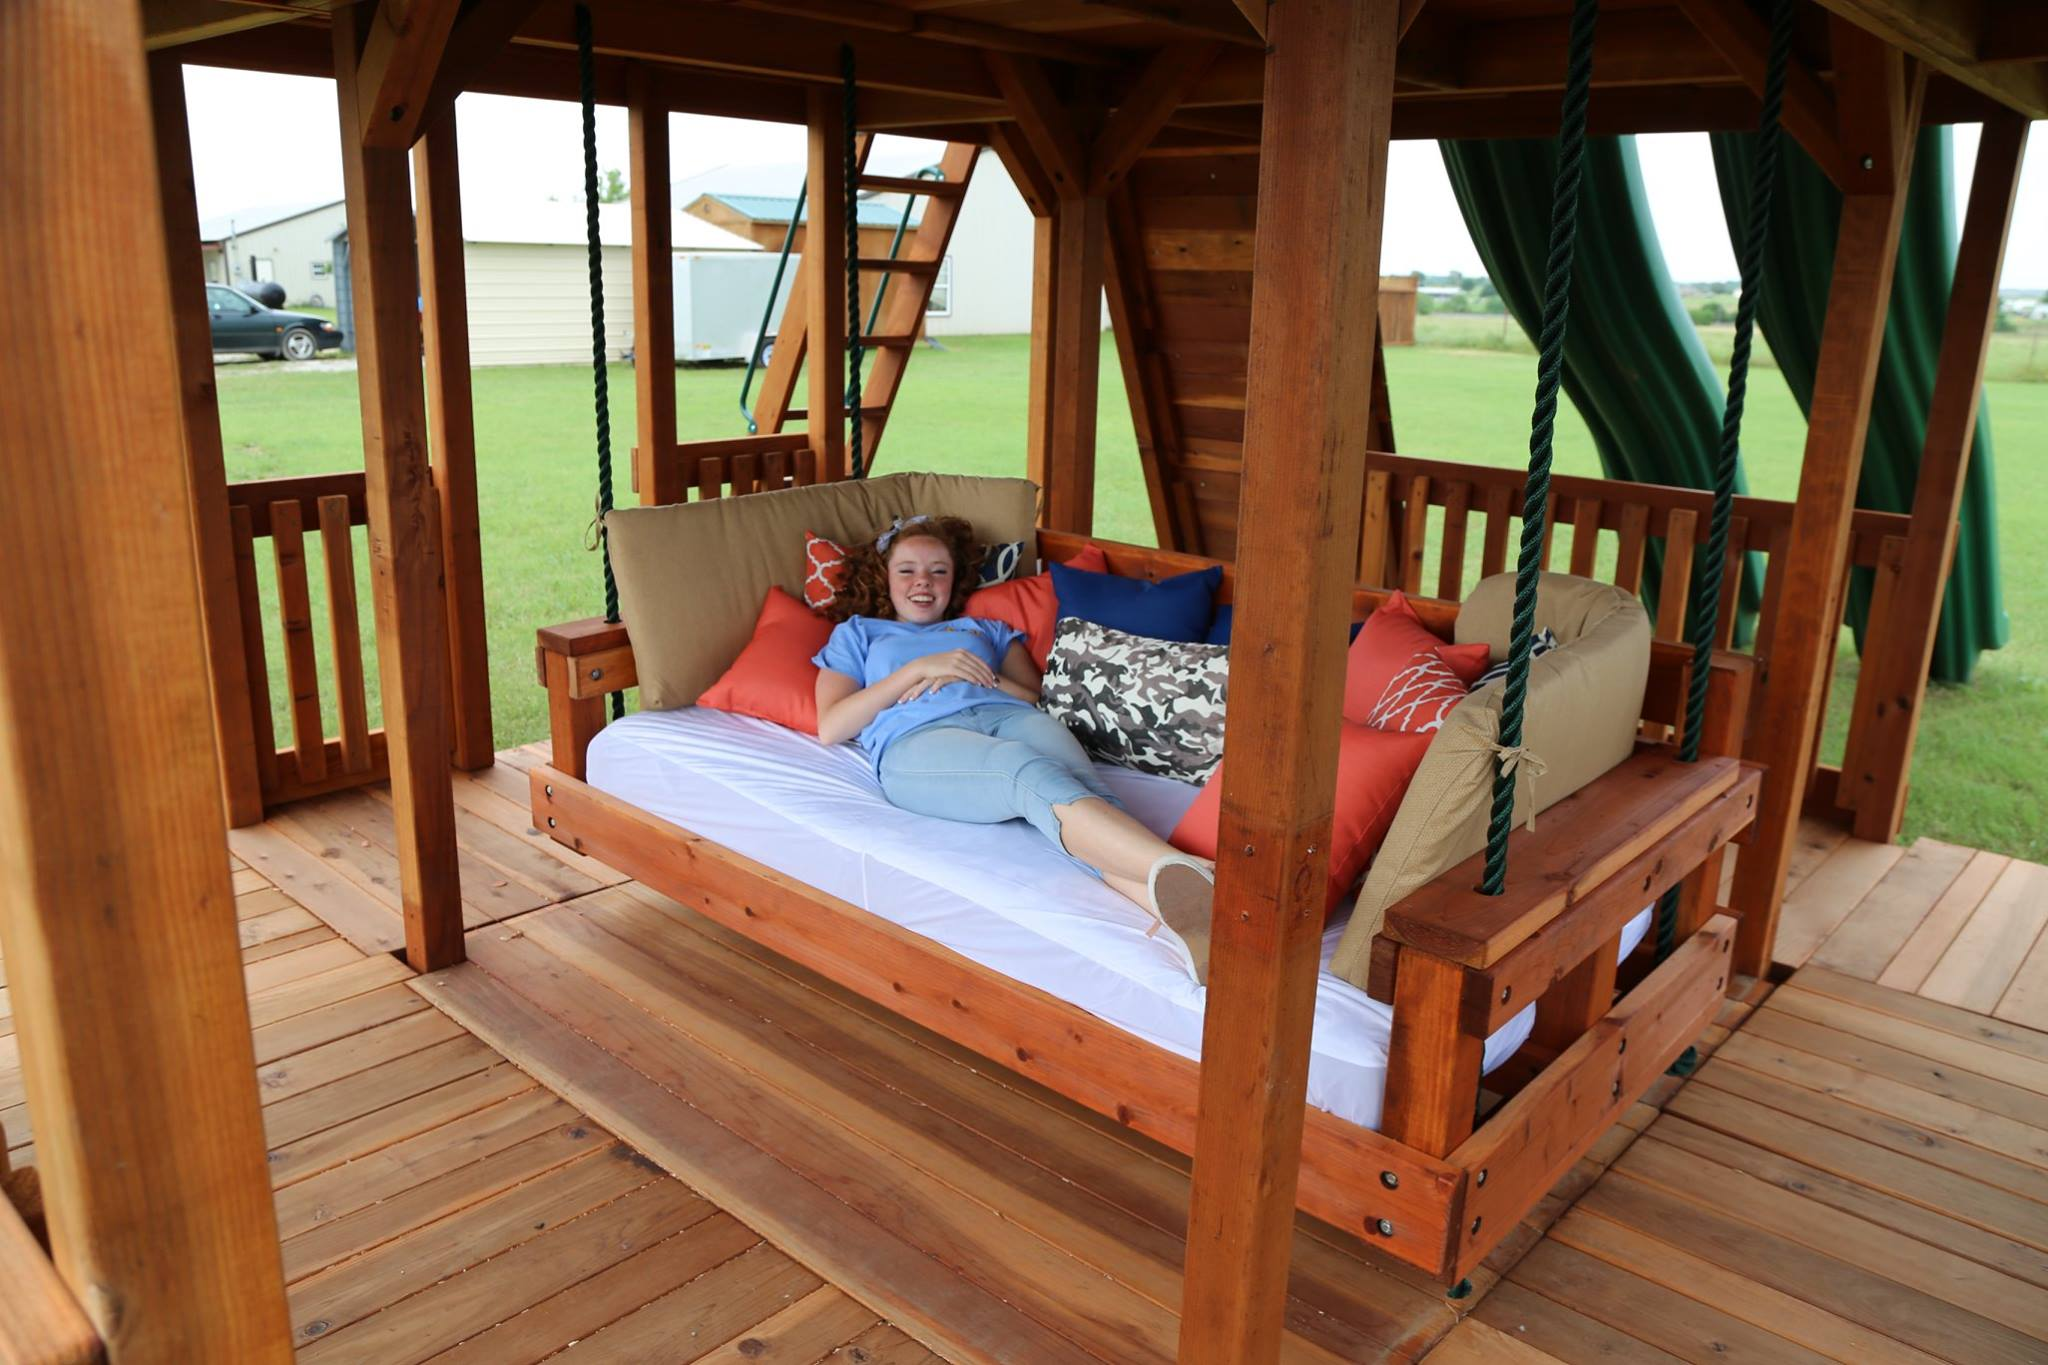 swinging bed, day bed, lounger, outdoor bed